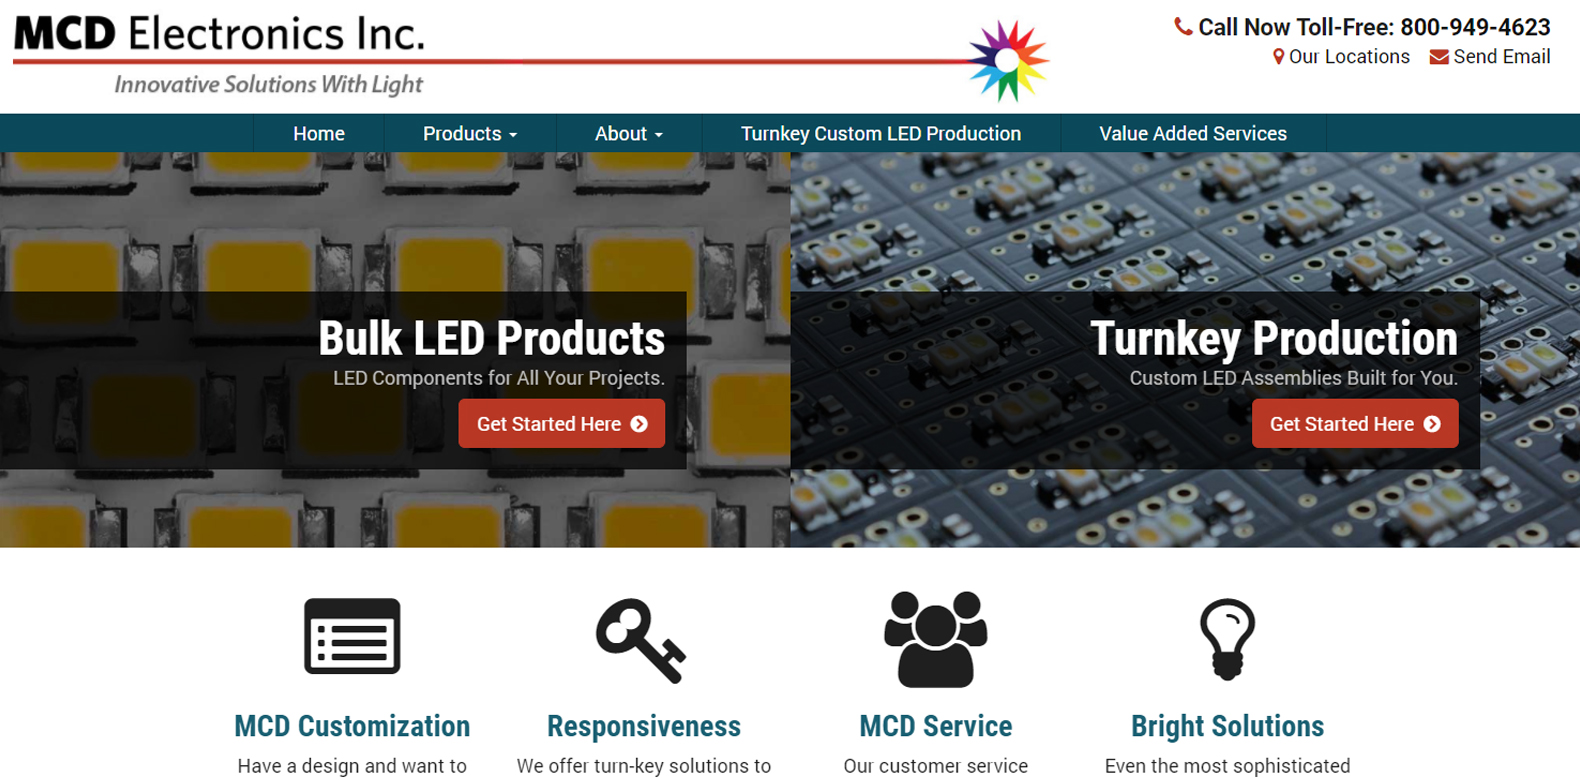 New Website Launch: MCD Electronics